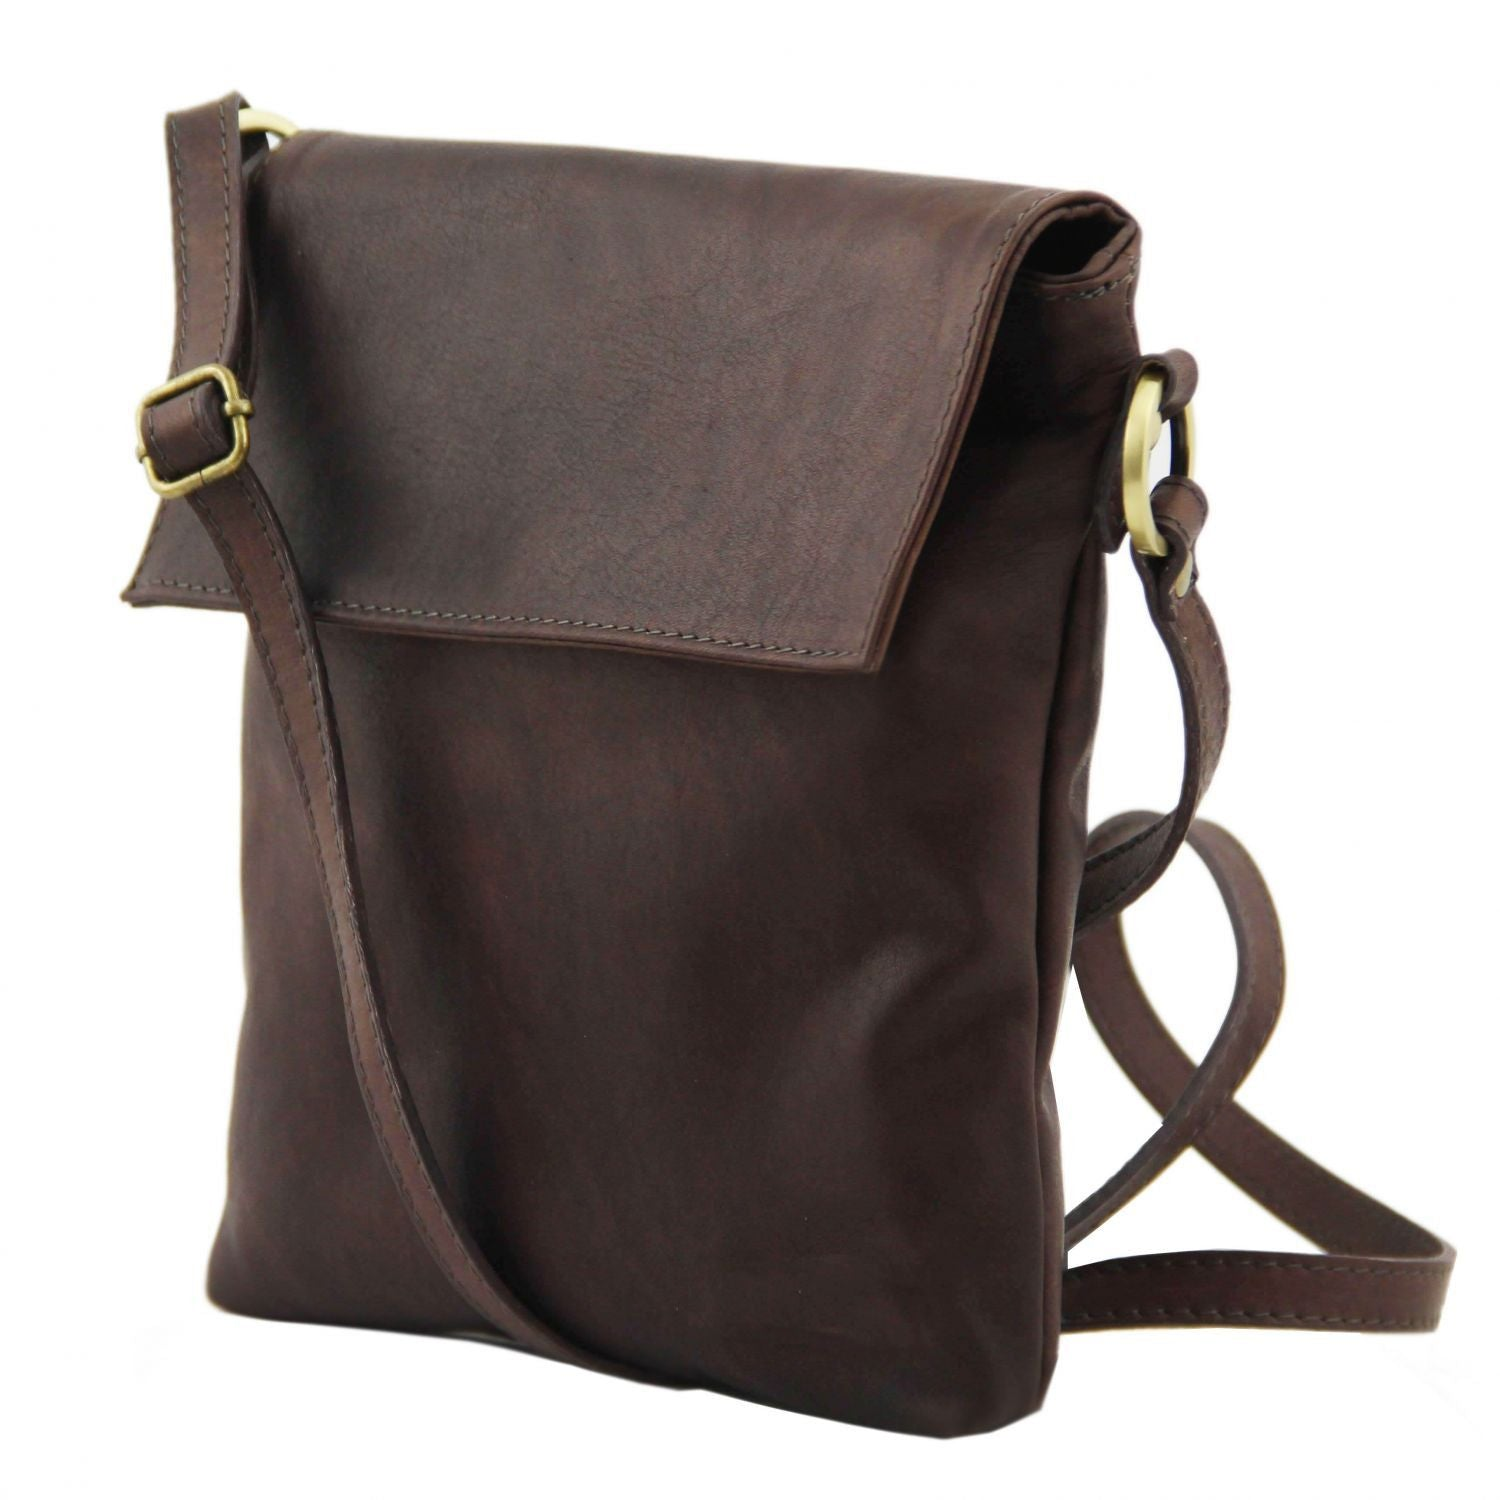 Morgan - Leather shoulder bag (TL141511) - Leather bags for men | DILUSSOBAGS